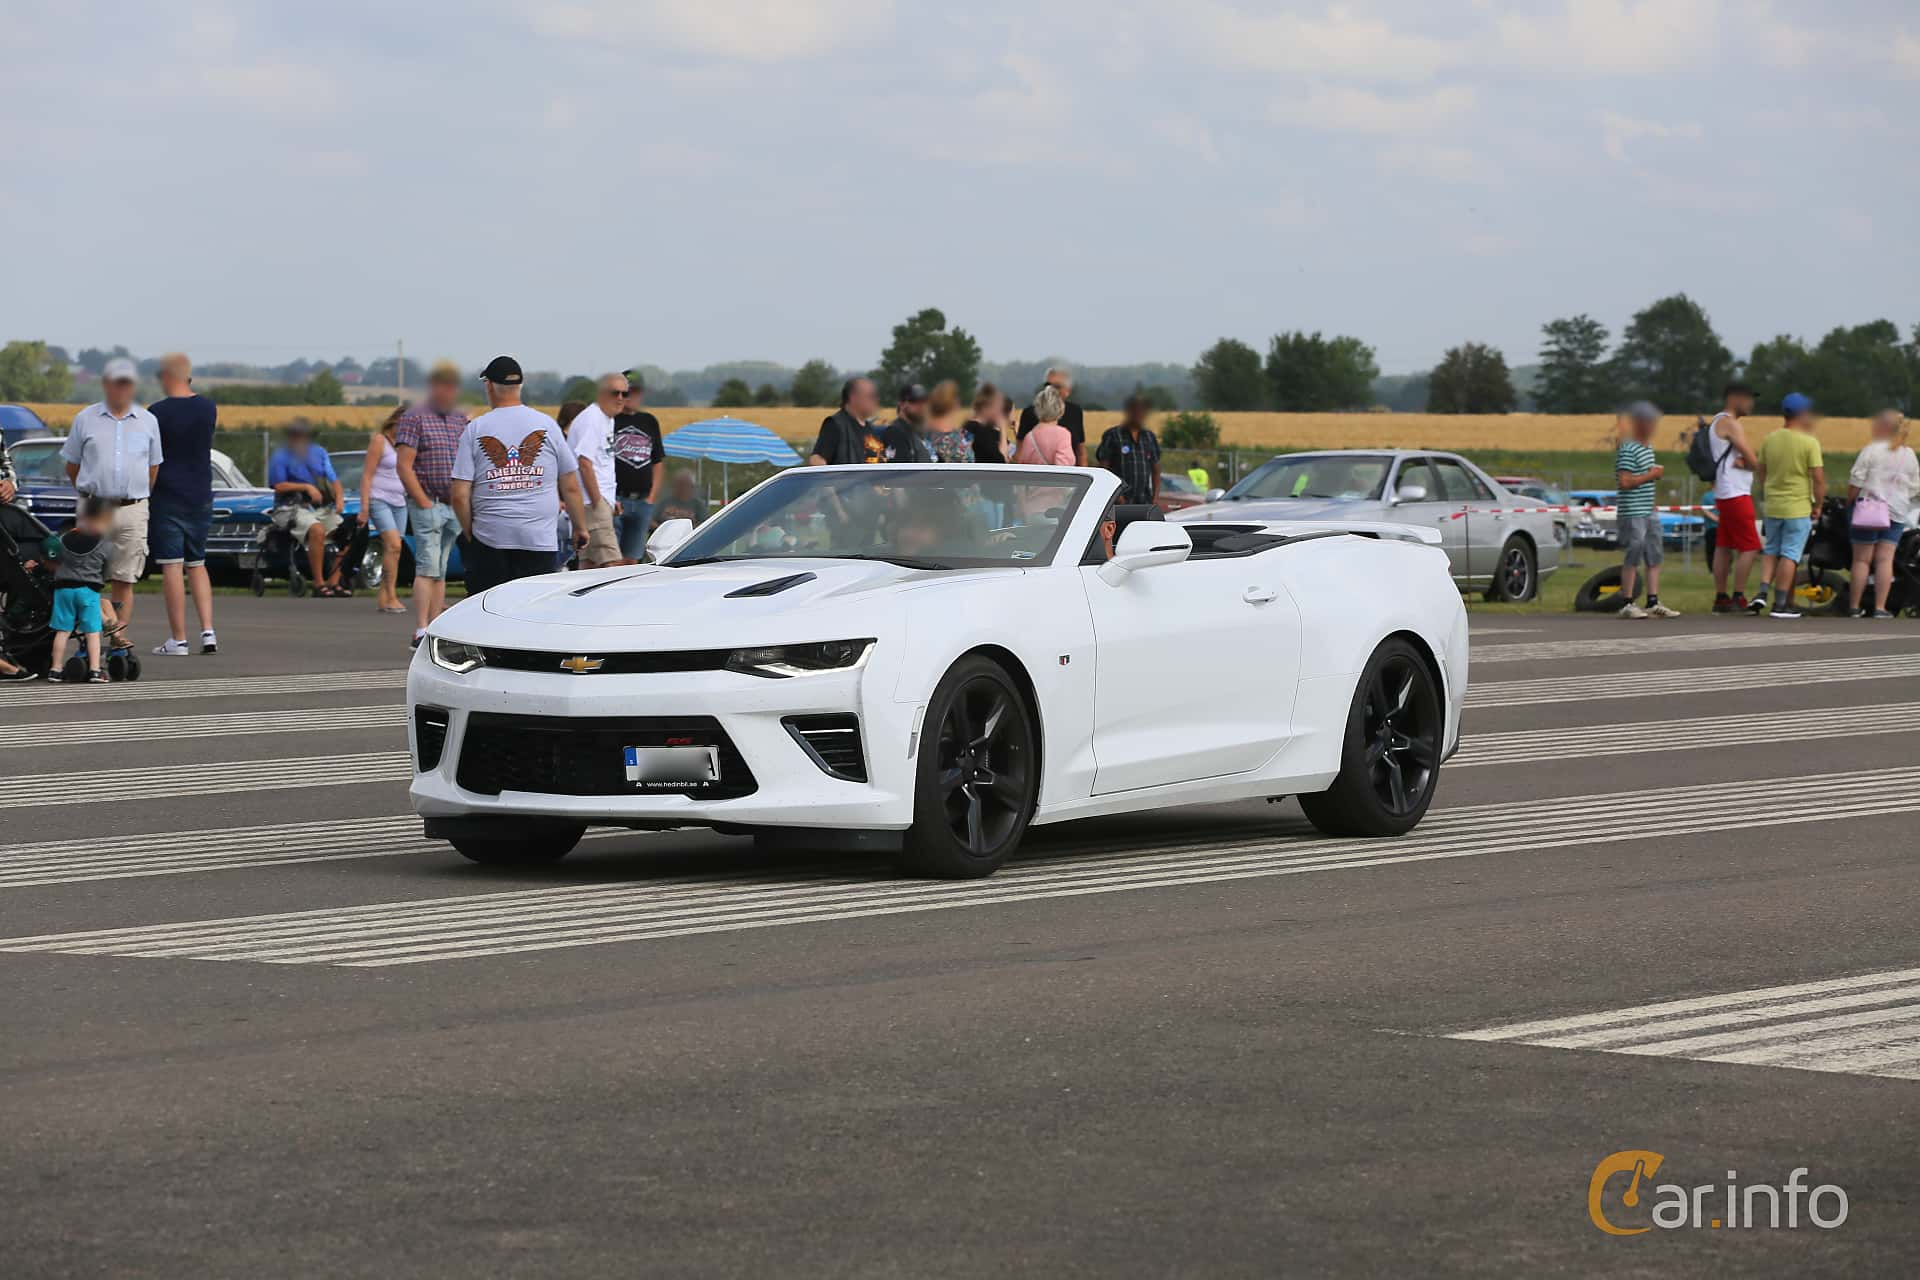 Chevrolet Camaro SS Convertible 6.2 V8 Hydra-Matic, 461hp, 2018 at Falköping Nasco Yankee Meet 2019